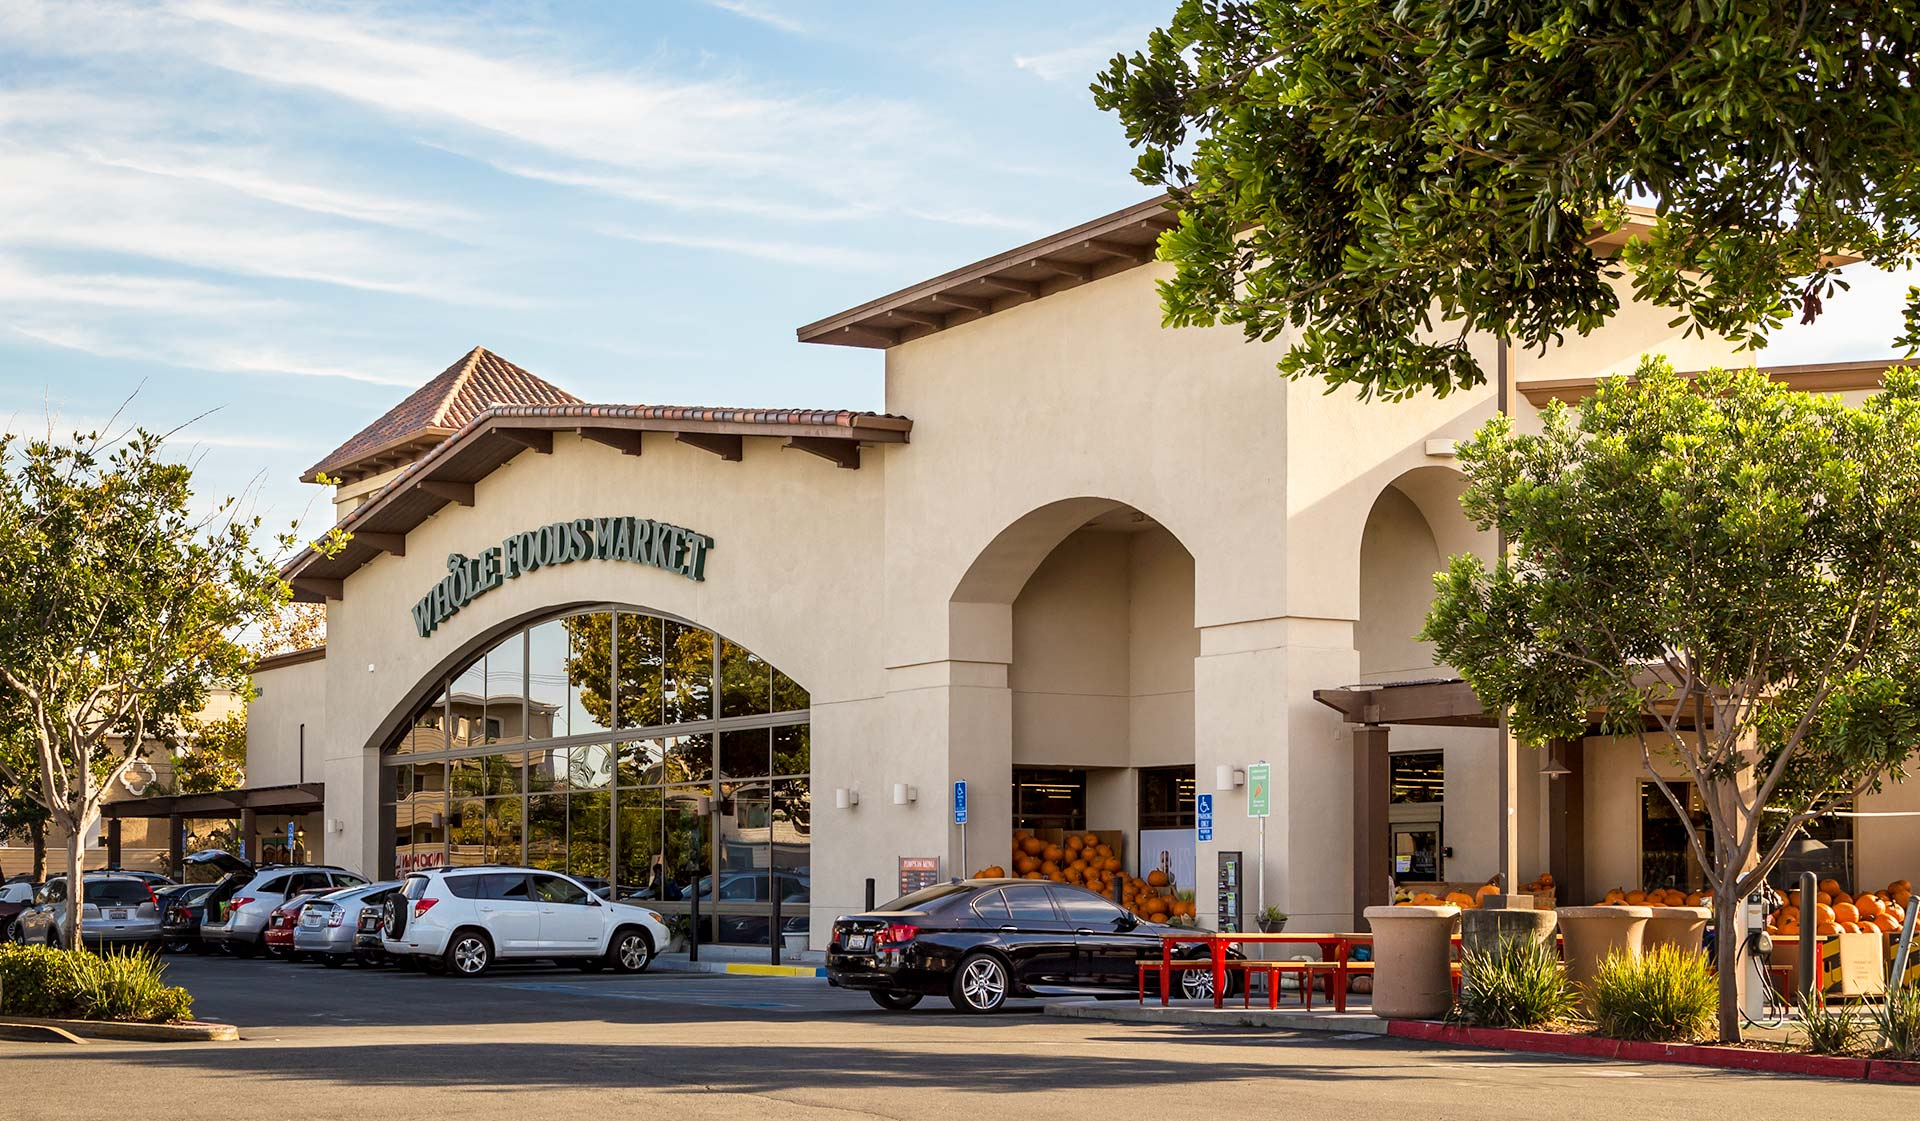 707 Leahy - Redwood City, CA - Wholefoods